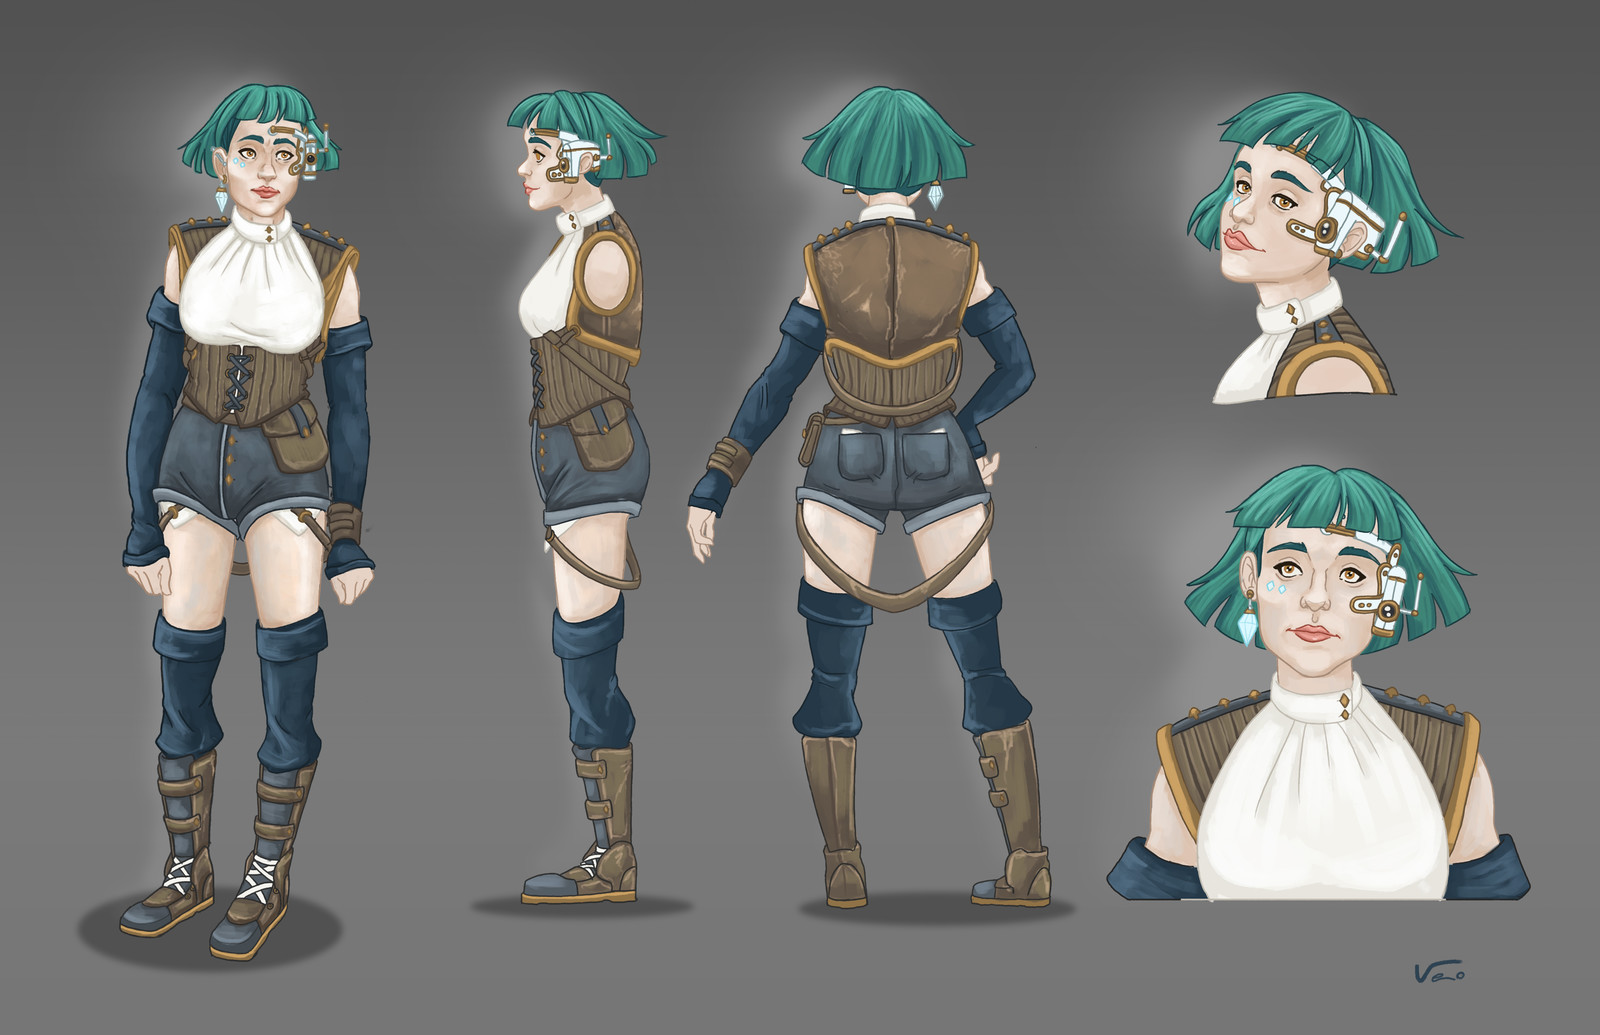 -Christina- 360 character sheet with close up looks.